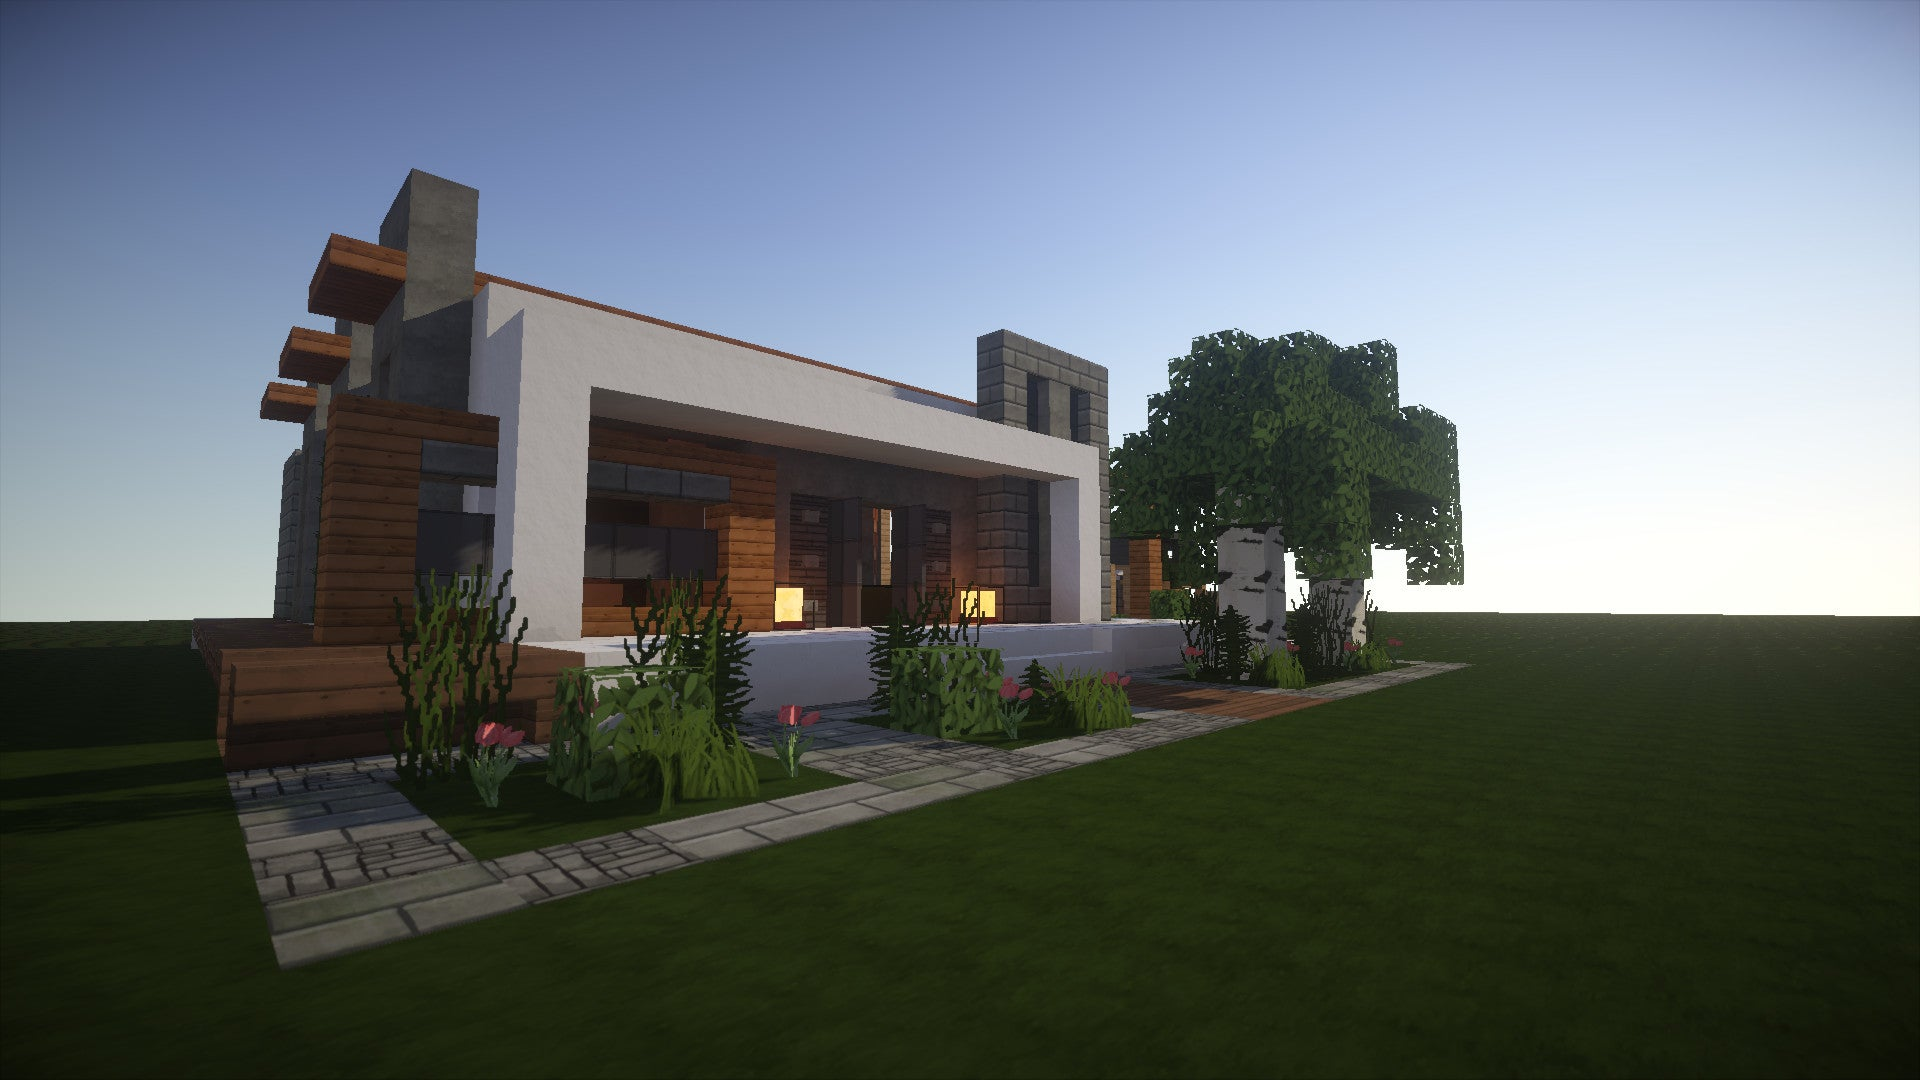 modern house minecraft pc - uncover more image and ideas. Find the ... - ^